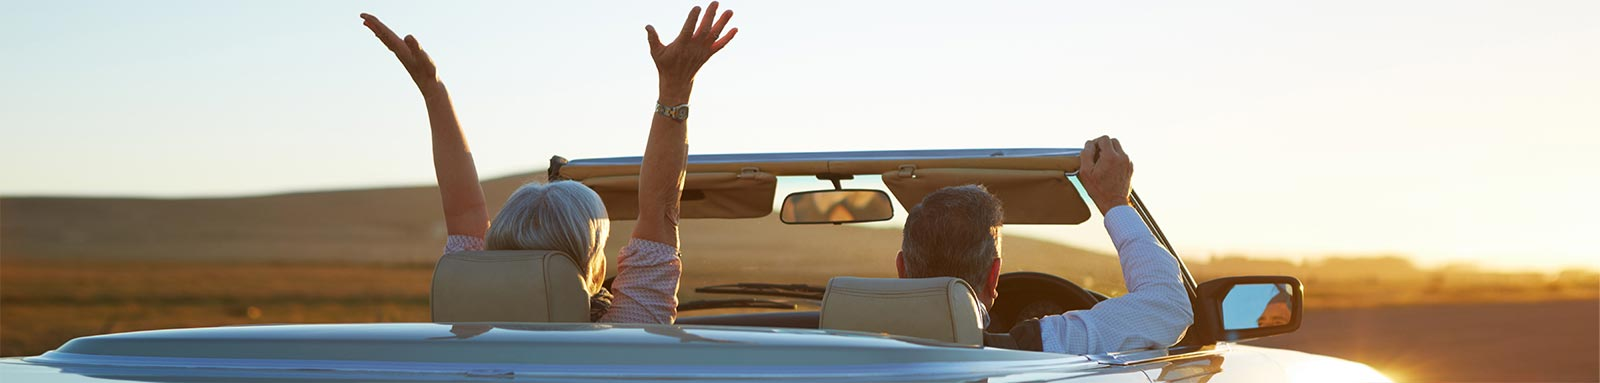 Mature couple in convertible car on open road